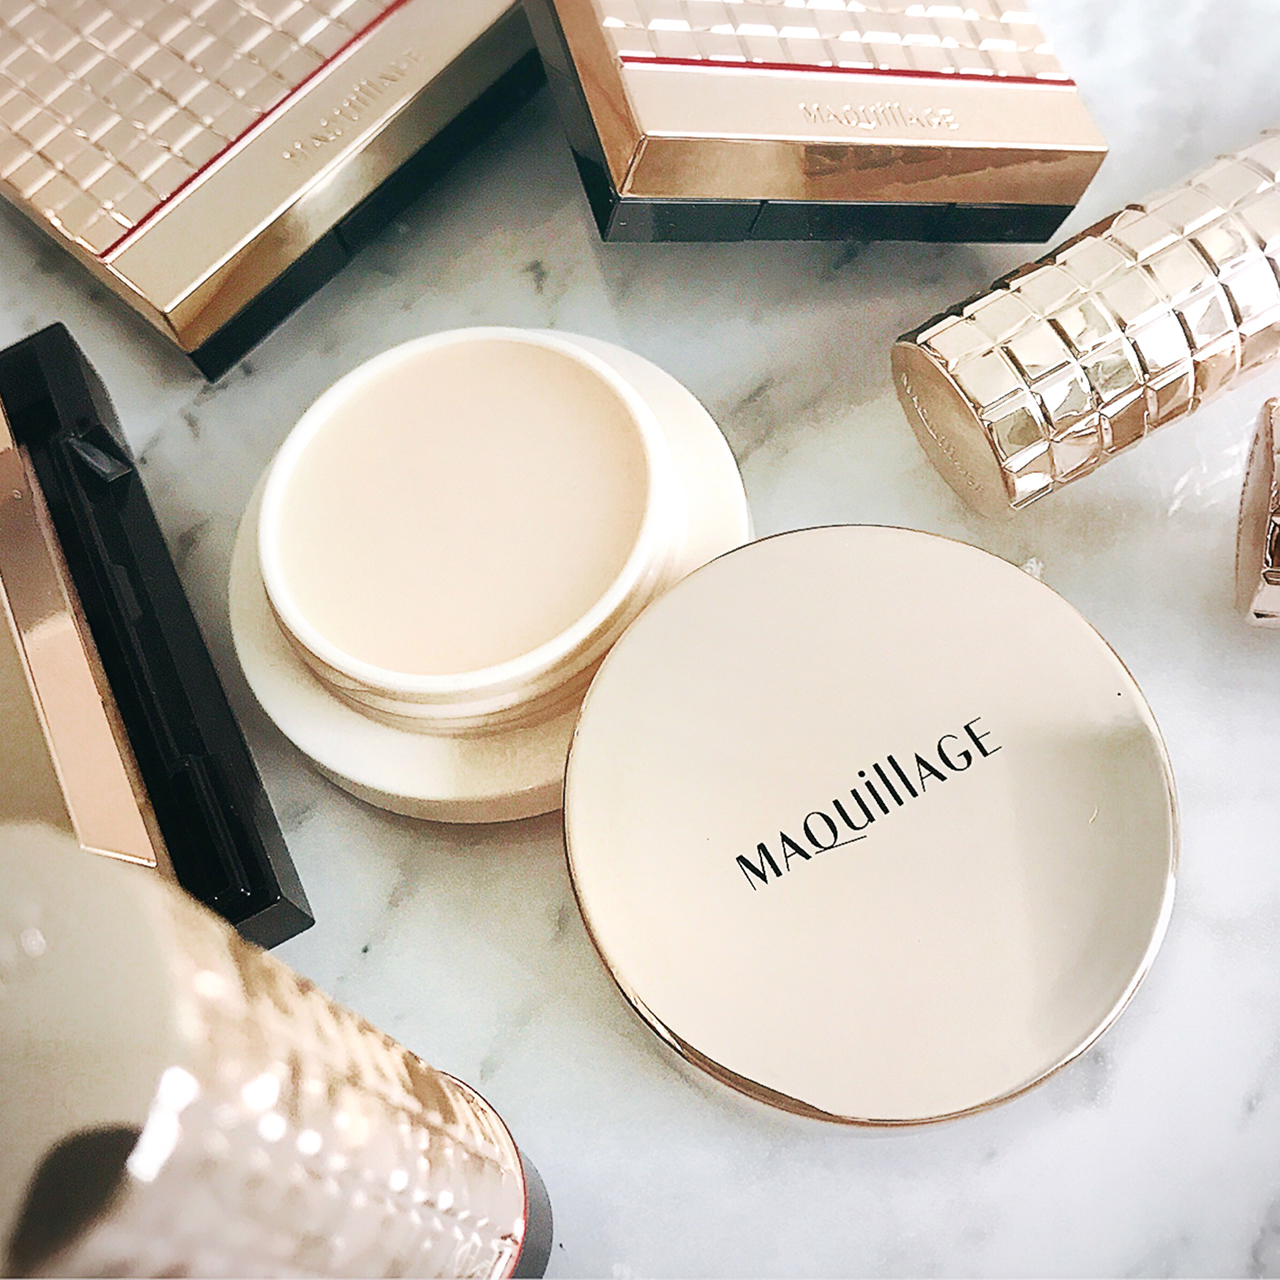 Shiseido Maquillage Flat Change Base